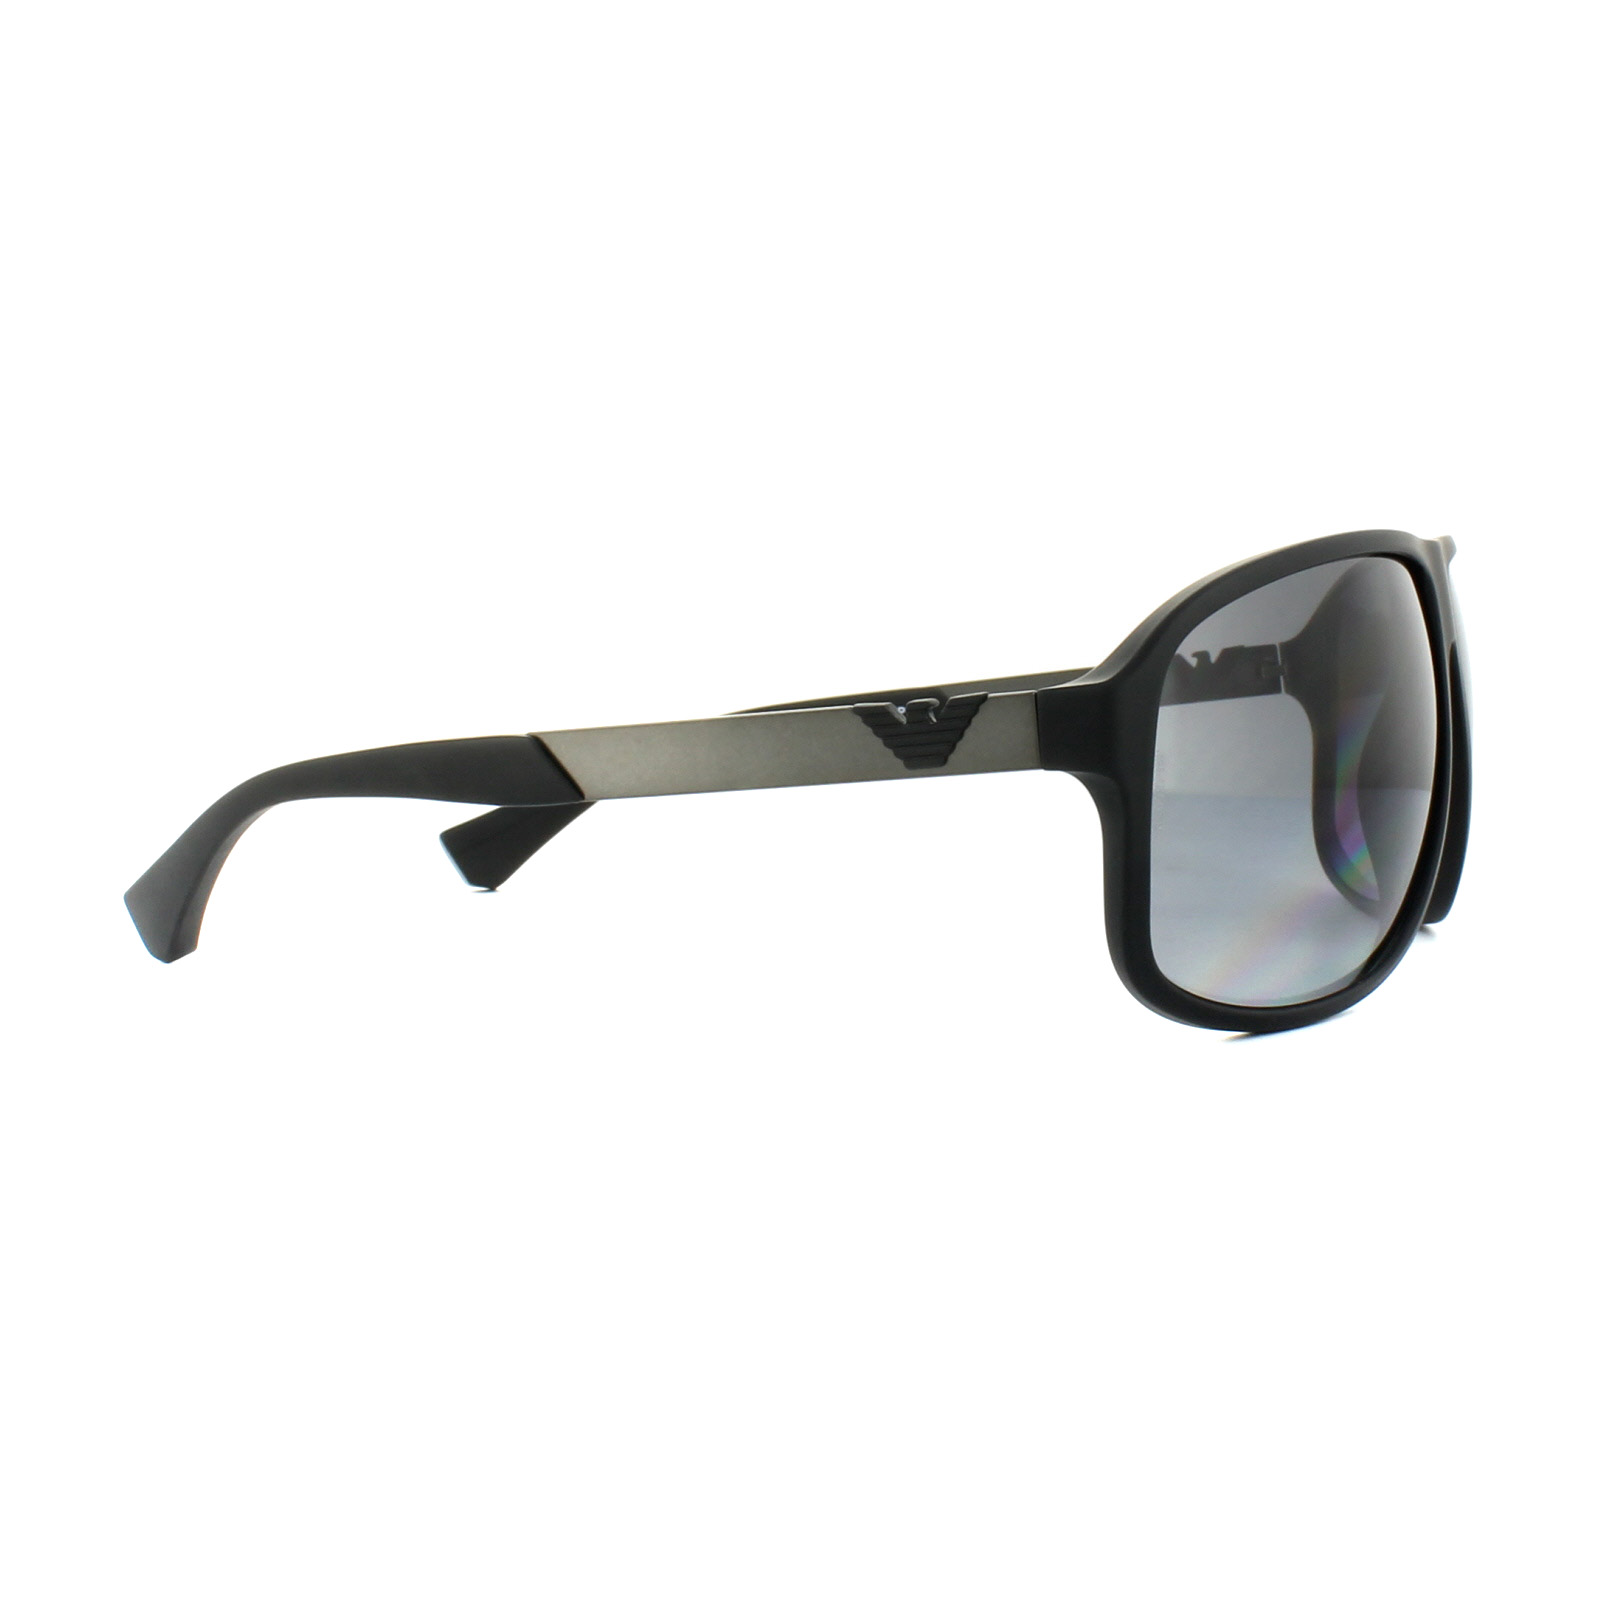 ca9e7052 Details about Emporio Armani Sunglasses 4029 5063T3 Black Rubber Grey  Gradient Polarized